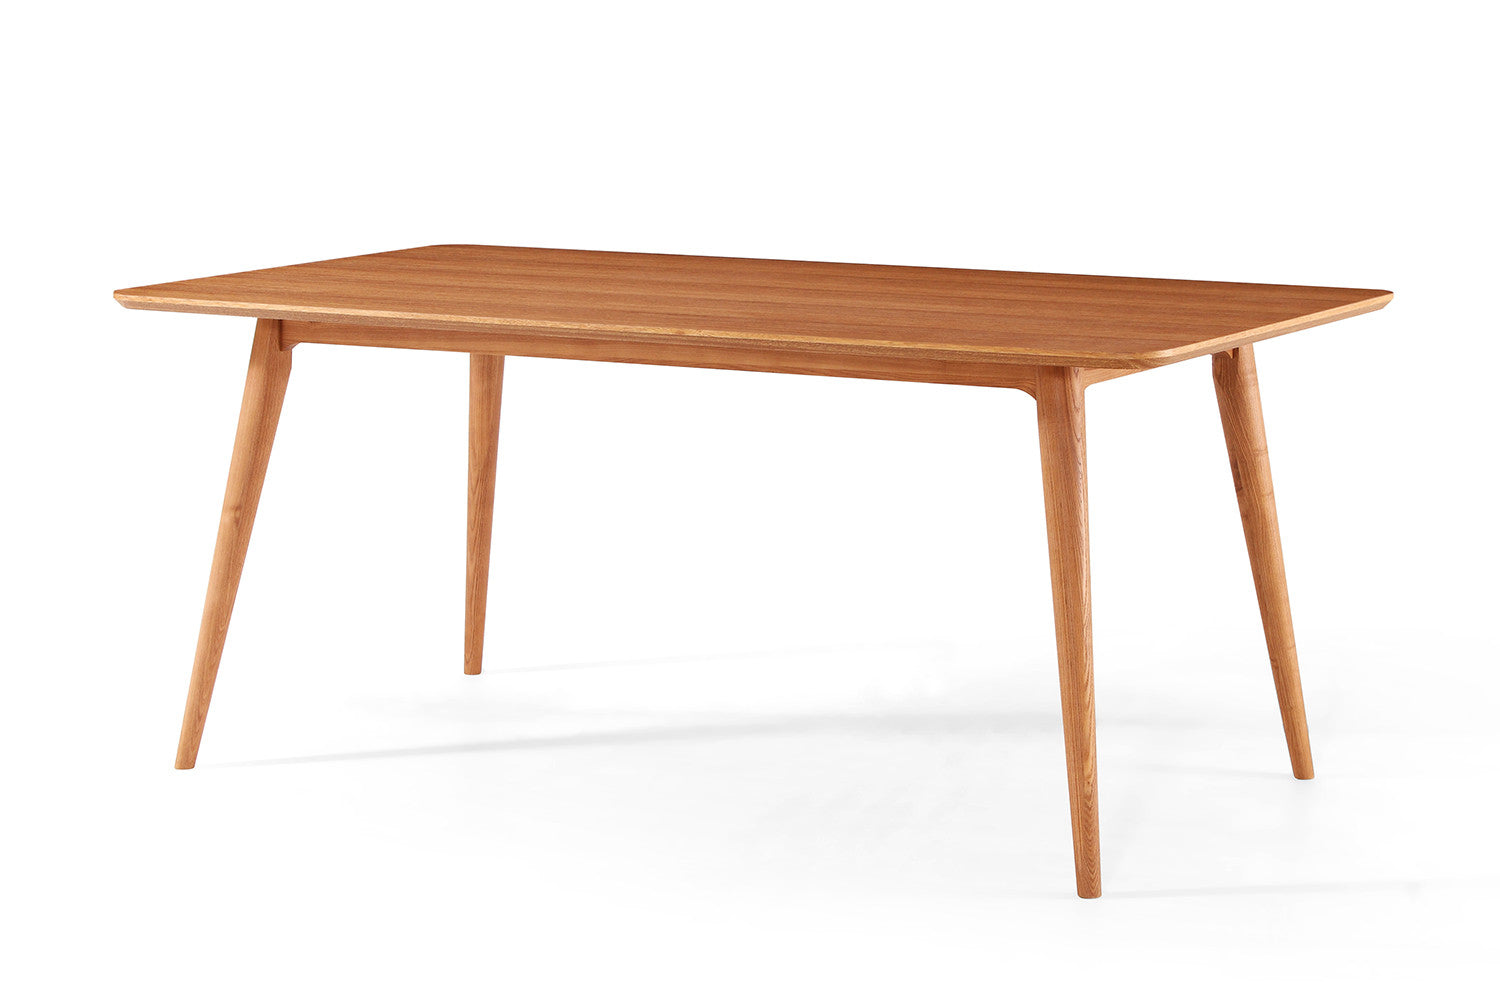 Table de salle manger design en bois julia dewarens for Table salle a manger yvrai